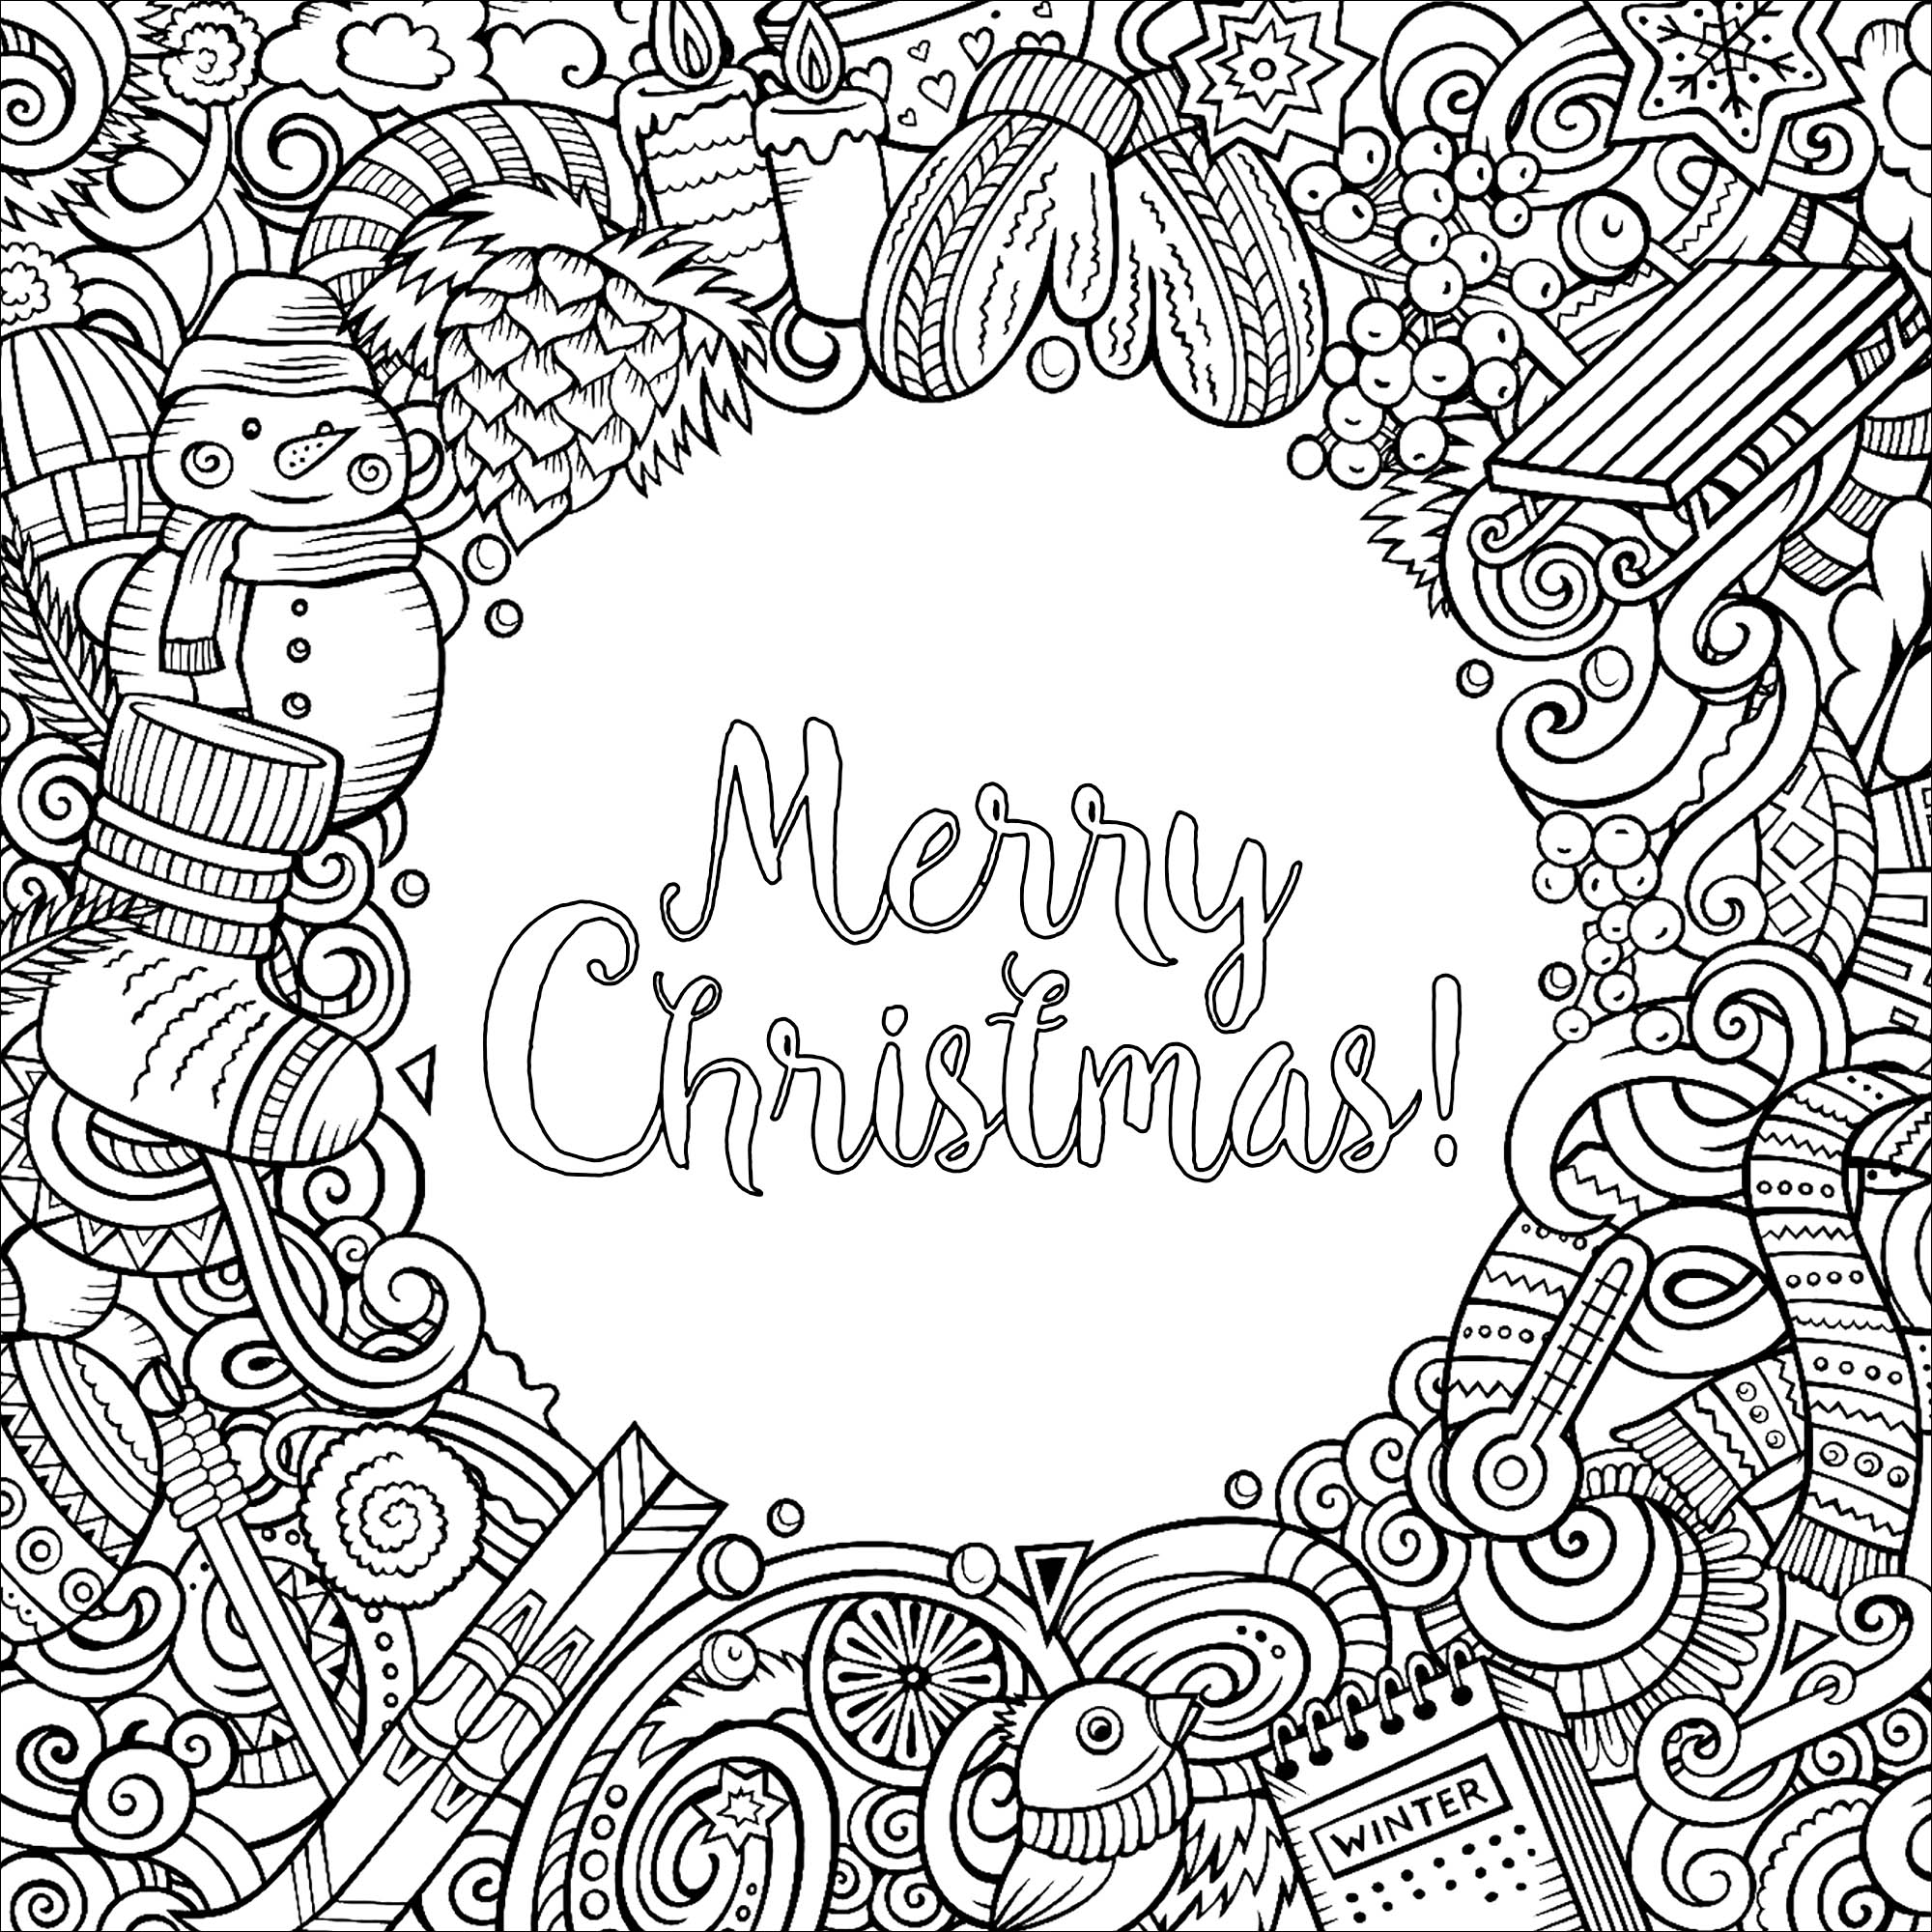 winter cartoon vector doodles square frame design with the text merry christmas